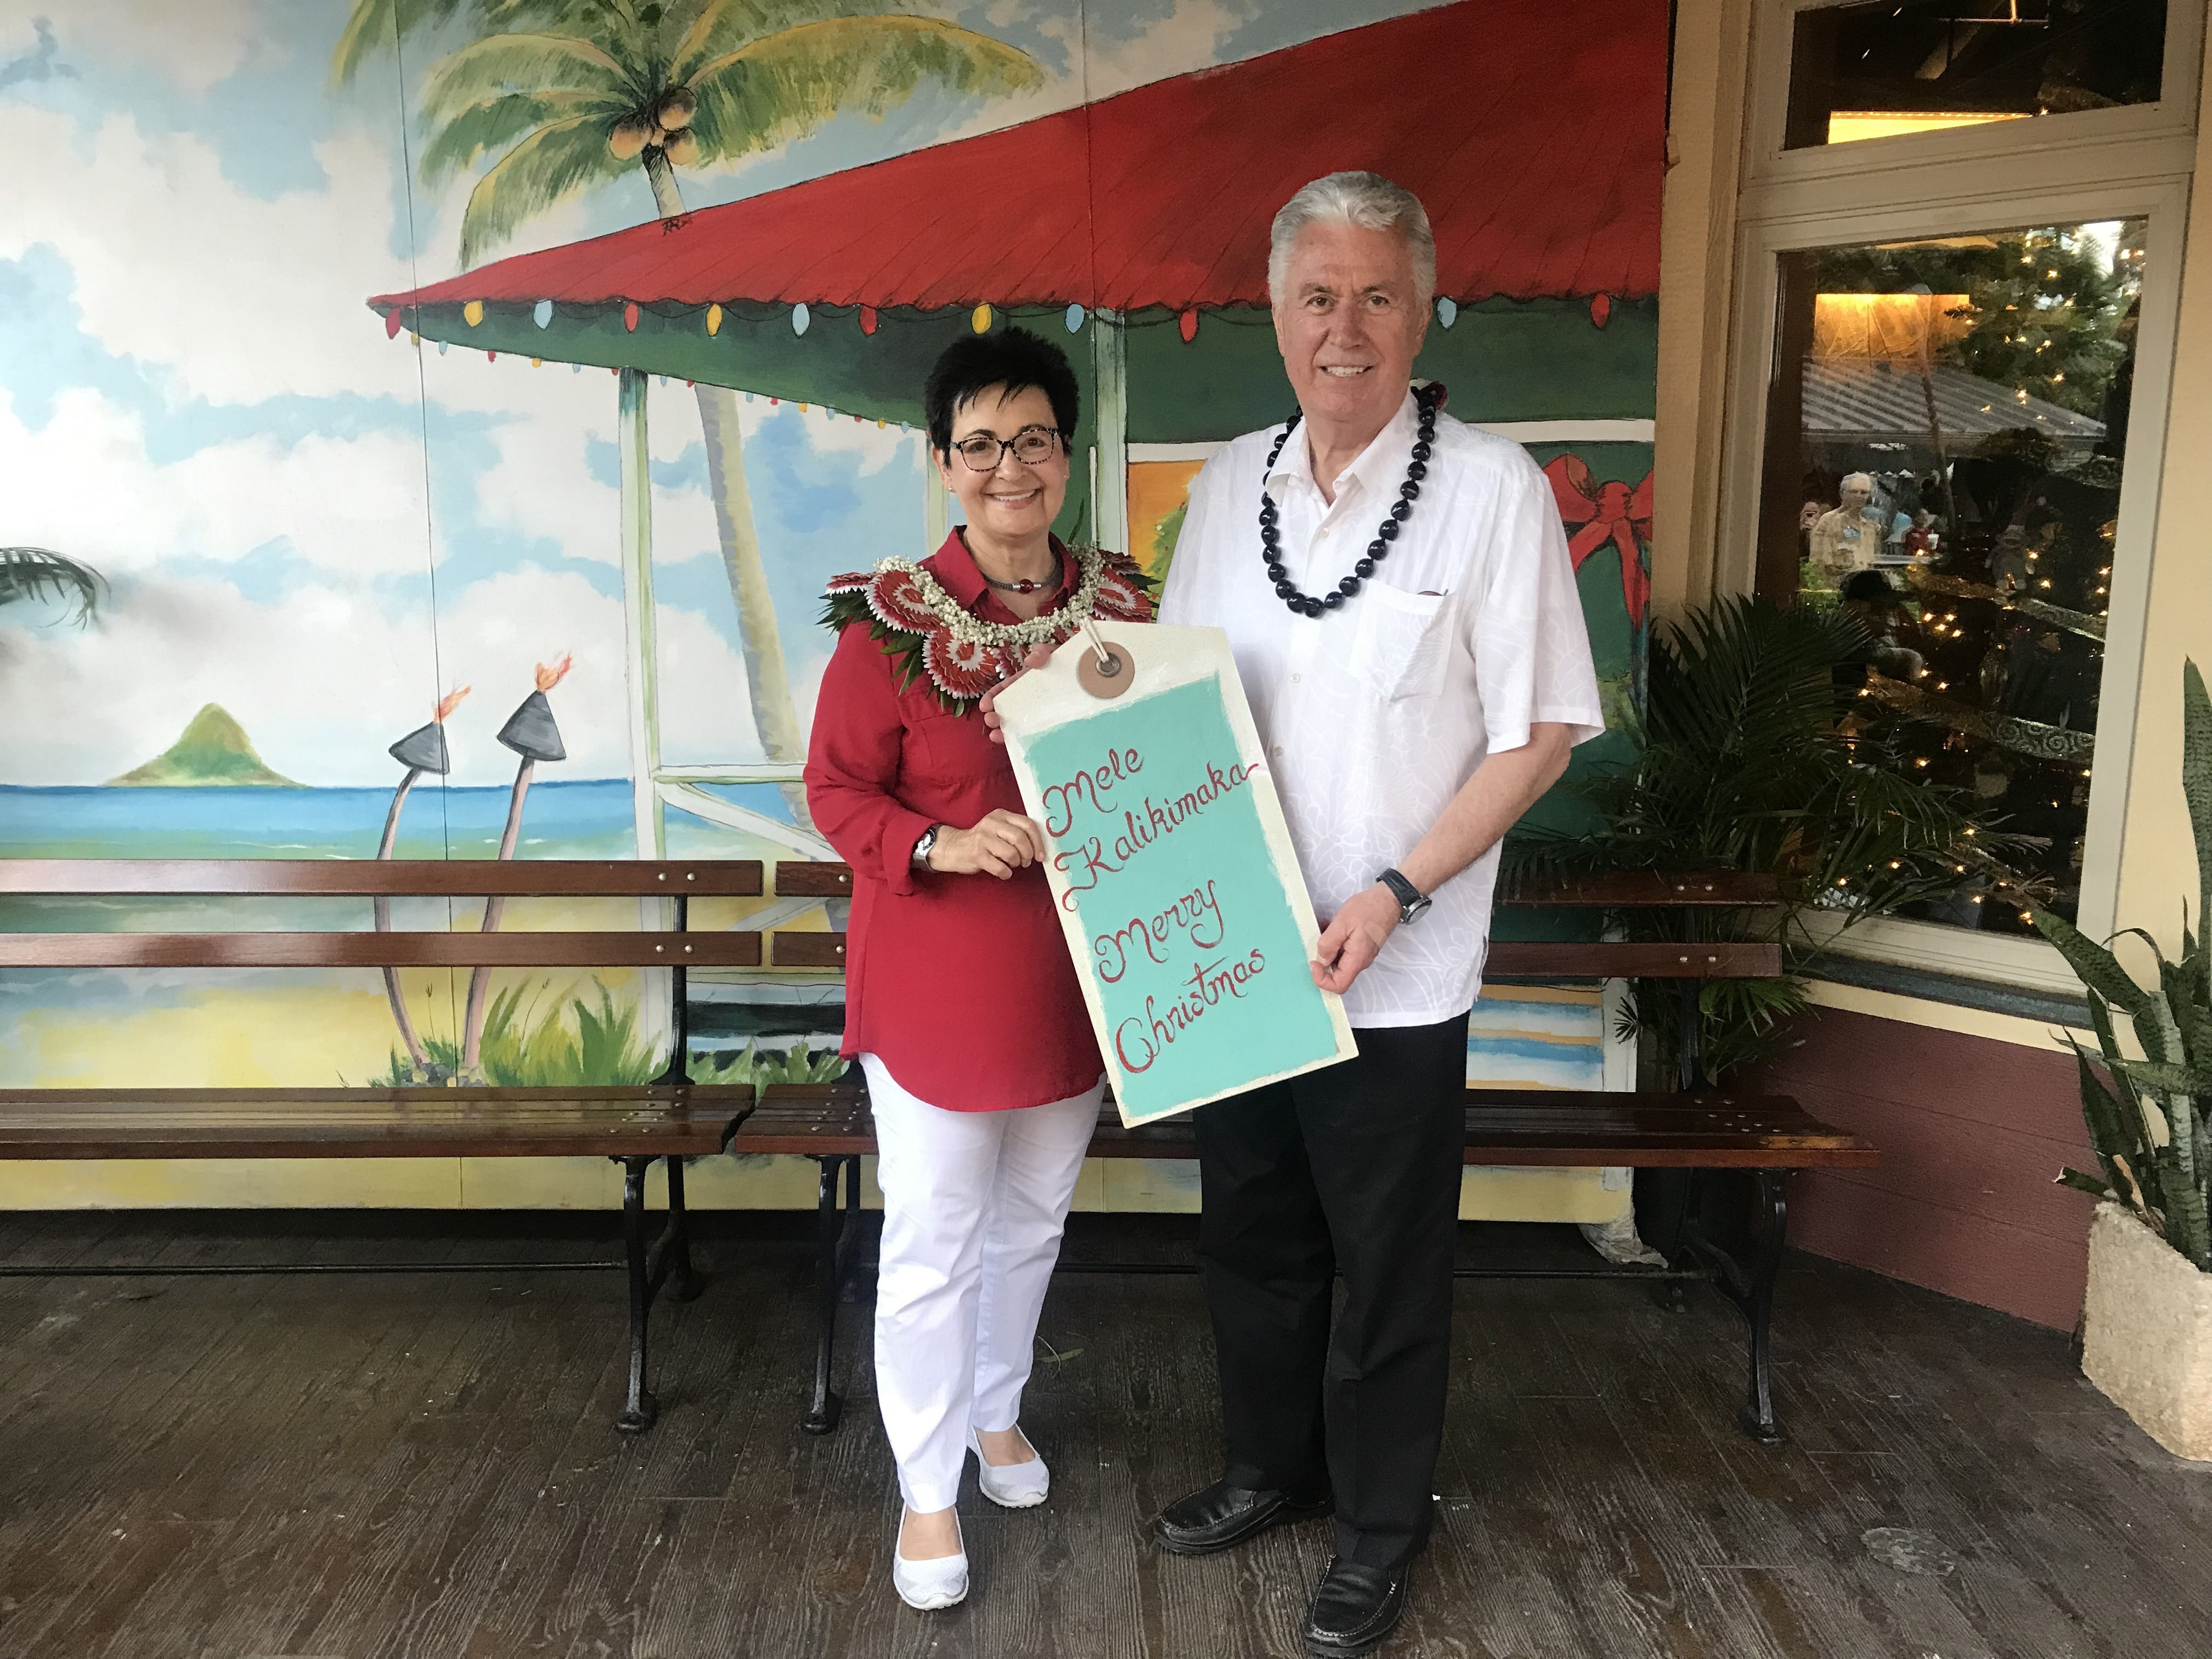 Elder Dieter F. Uchtdorf and his wife, Sister Harriet Uchtdorf, at the Polynesian Cultural Center on Dec. 13. Elder Uchtdorf gave the keynote address at BYU-Hawaii commencement on Dec. 14.